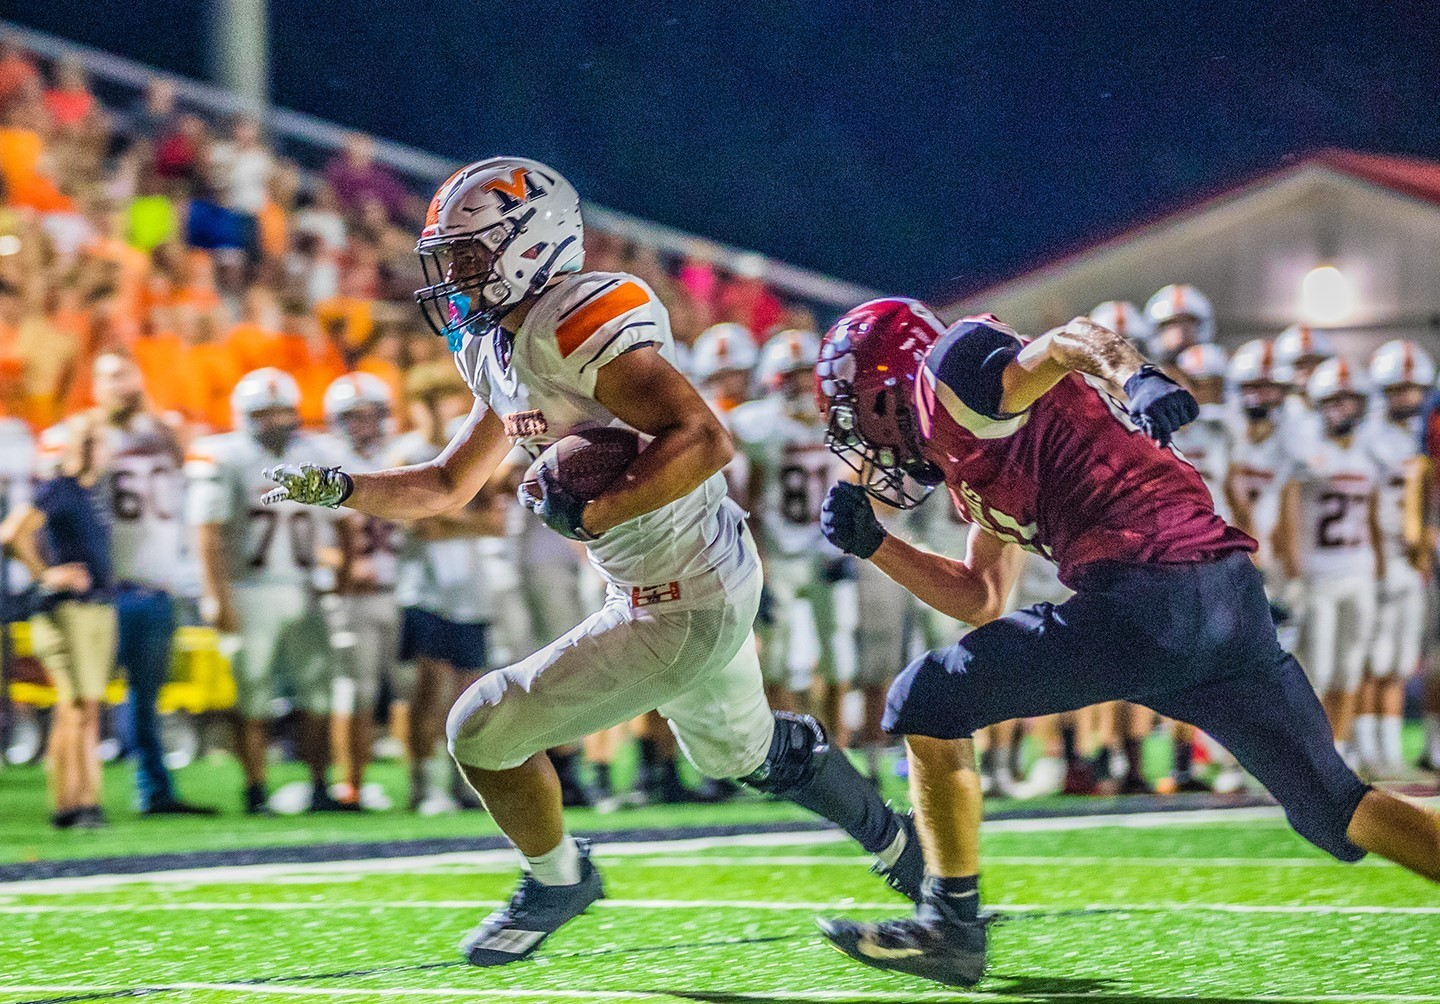 Mount Vernon running back avoiding a tackle during the Newark game.